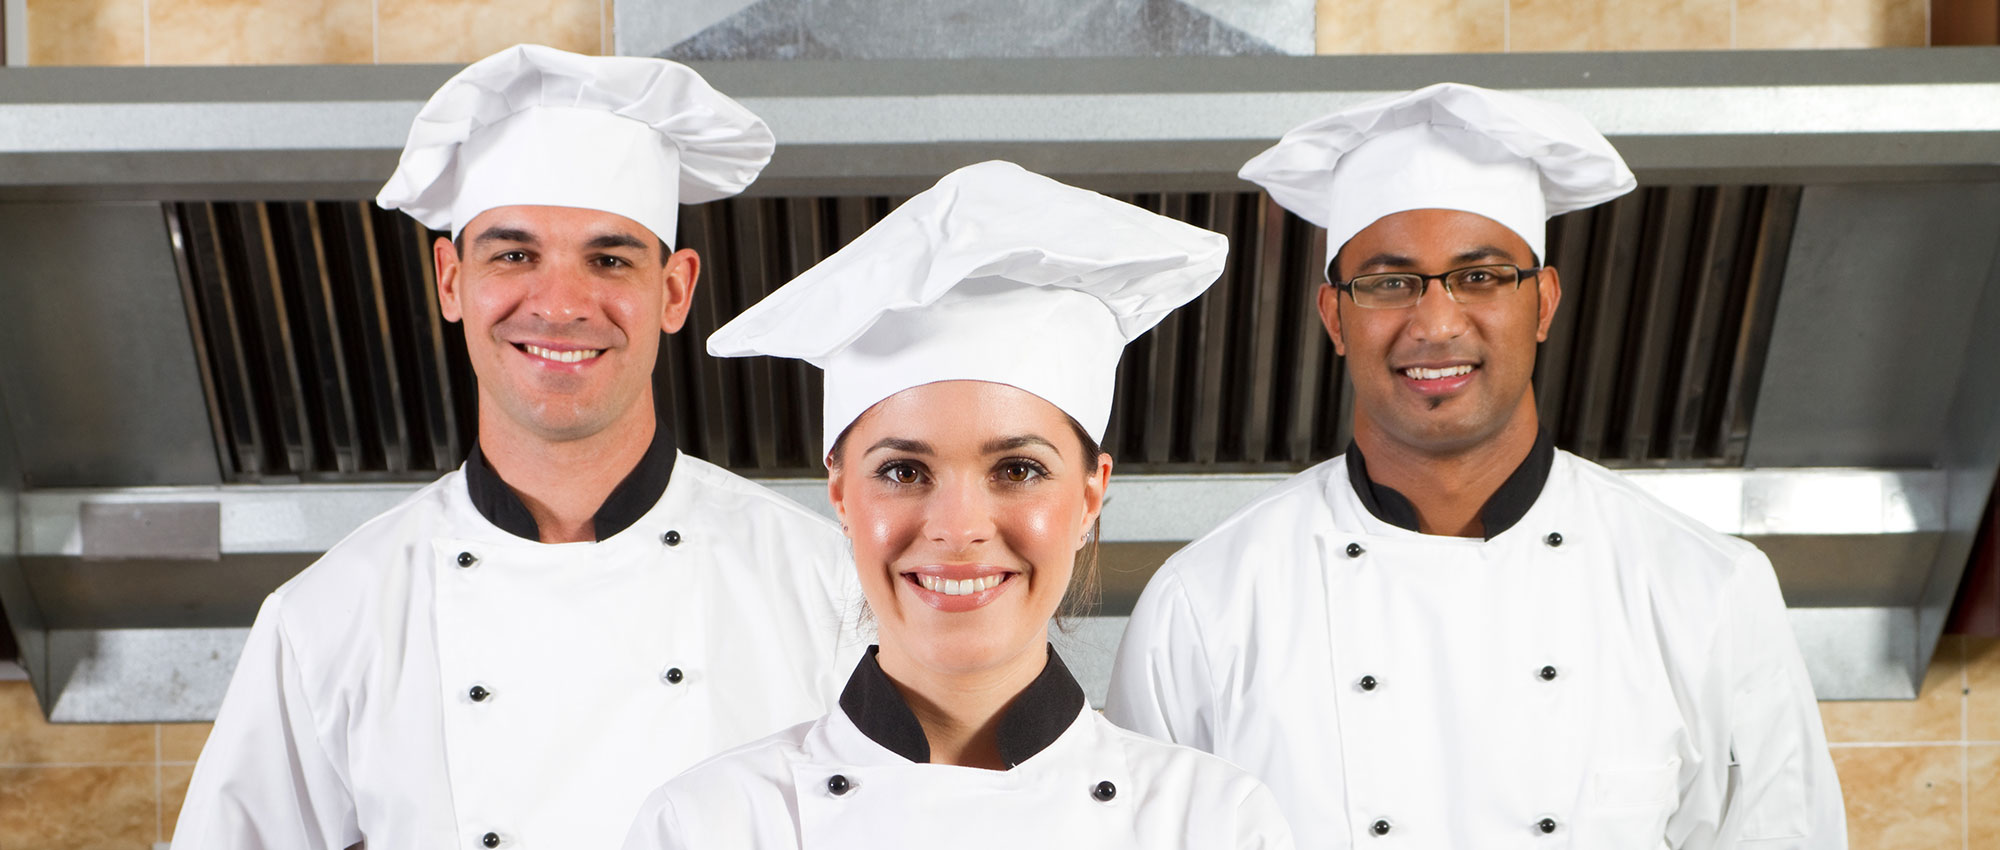 Chef Whites and Chef Uniforms